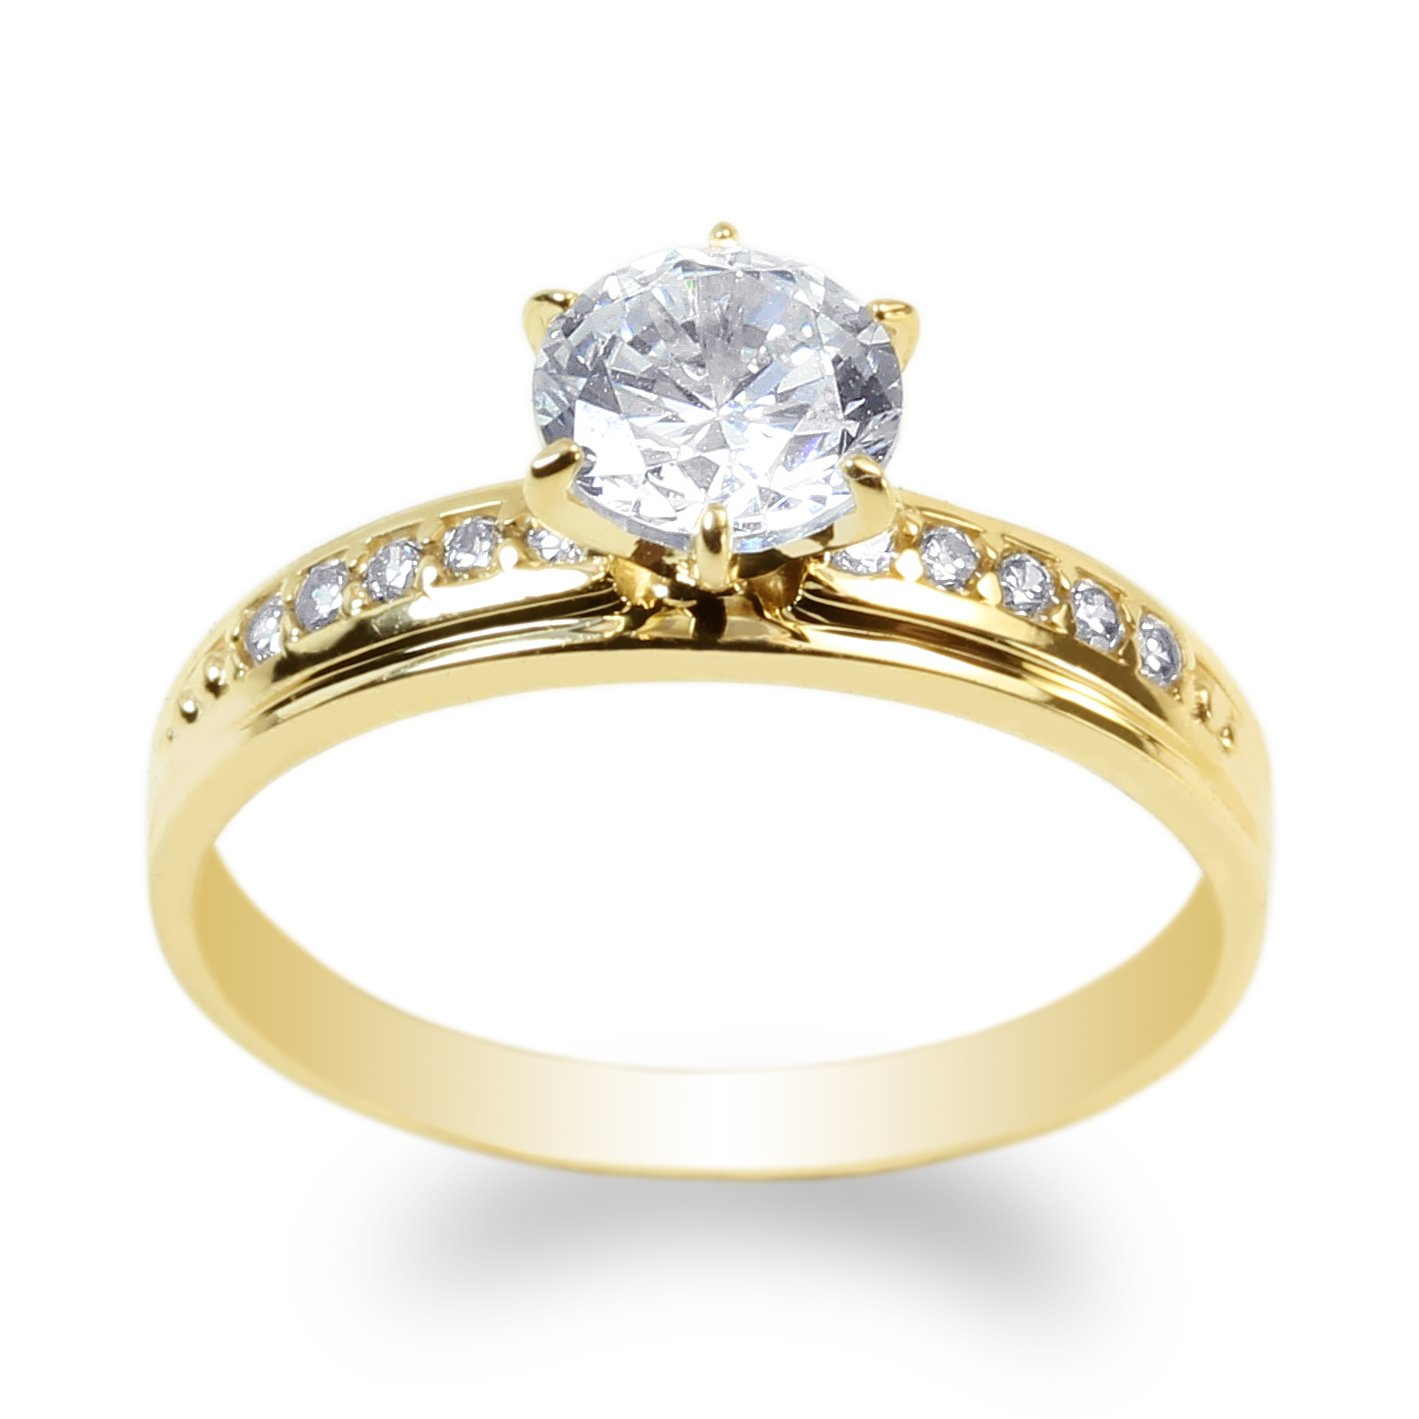 JamesJenny Yellow Gold Plated 1.0 ct Clear CZ Beautiful Solitaire Ring Size 7